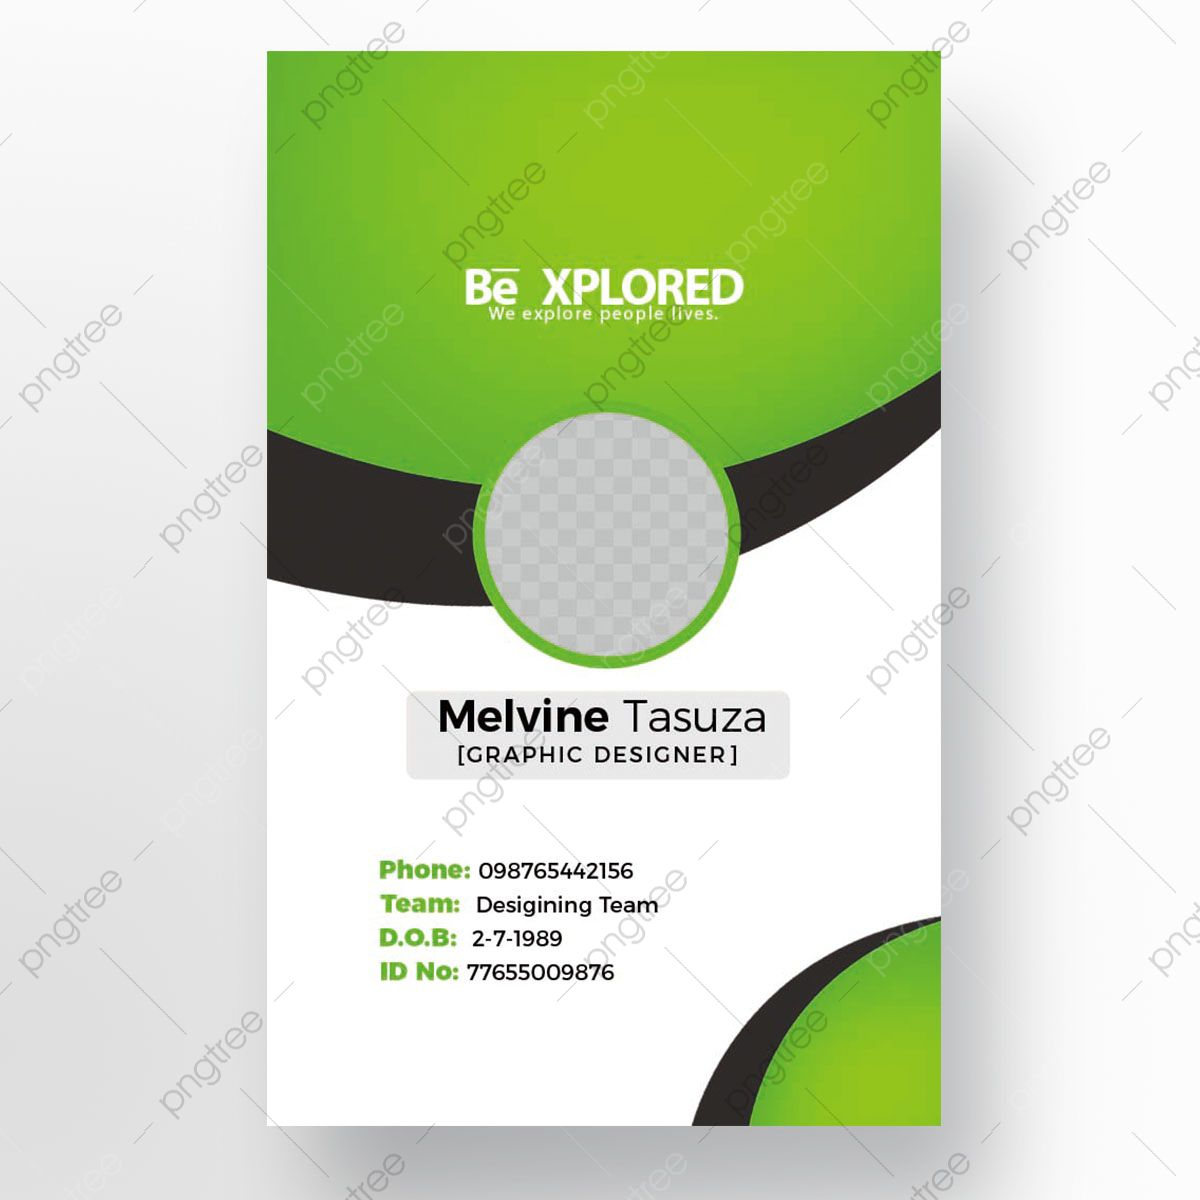 008 Unbelievable Id Badge Template Free Online Highest Clarity Full